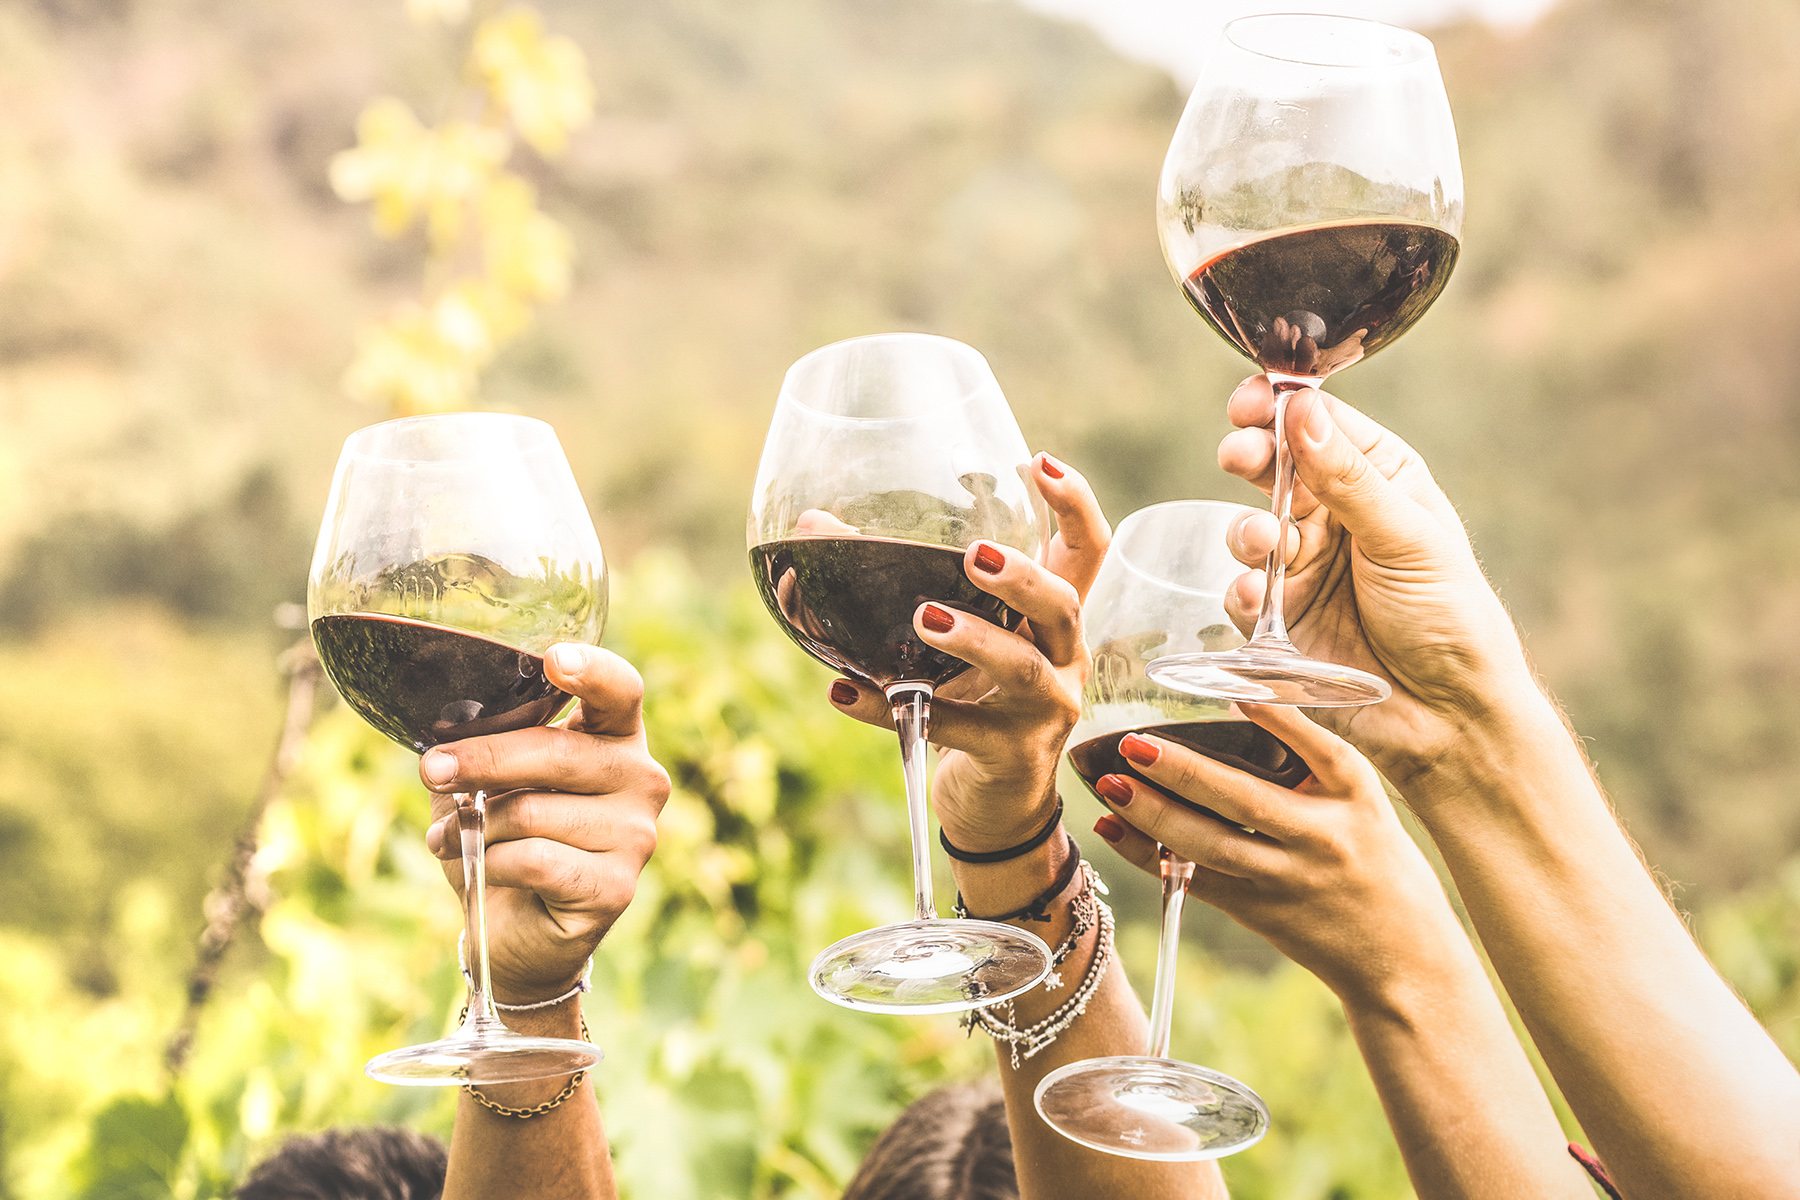 Clinking wine glasses in southern Europe